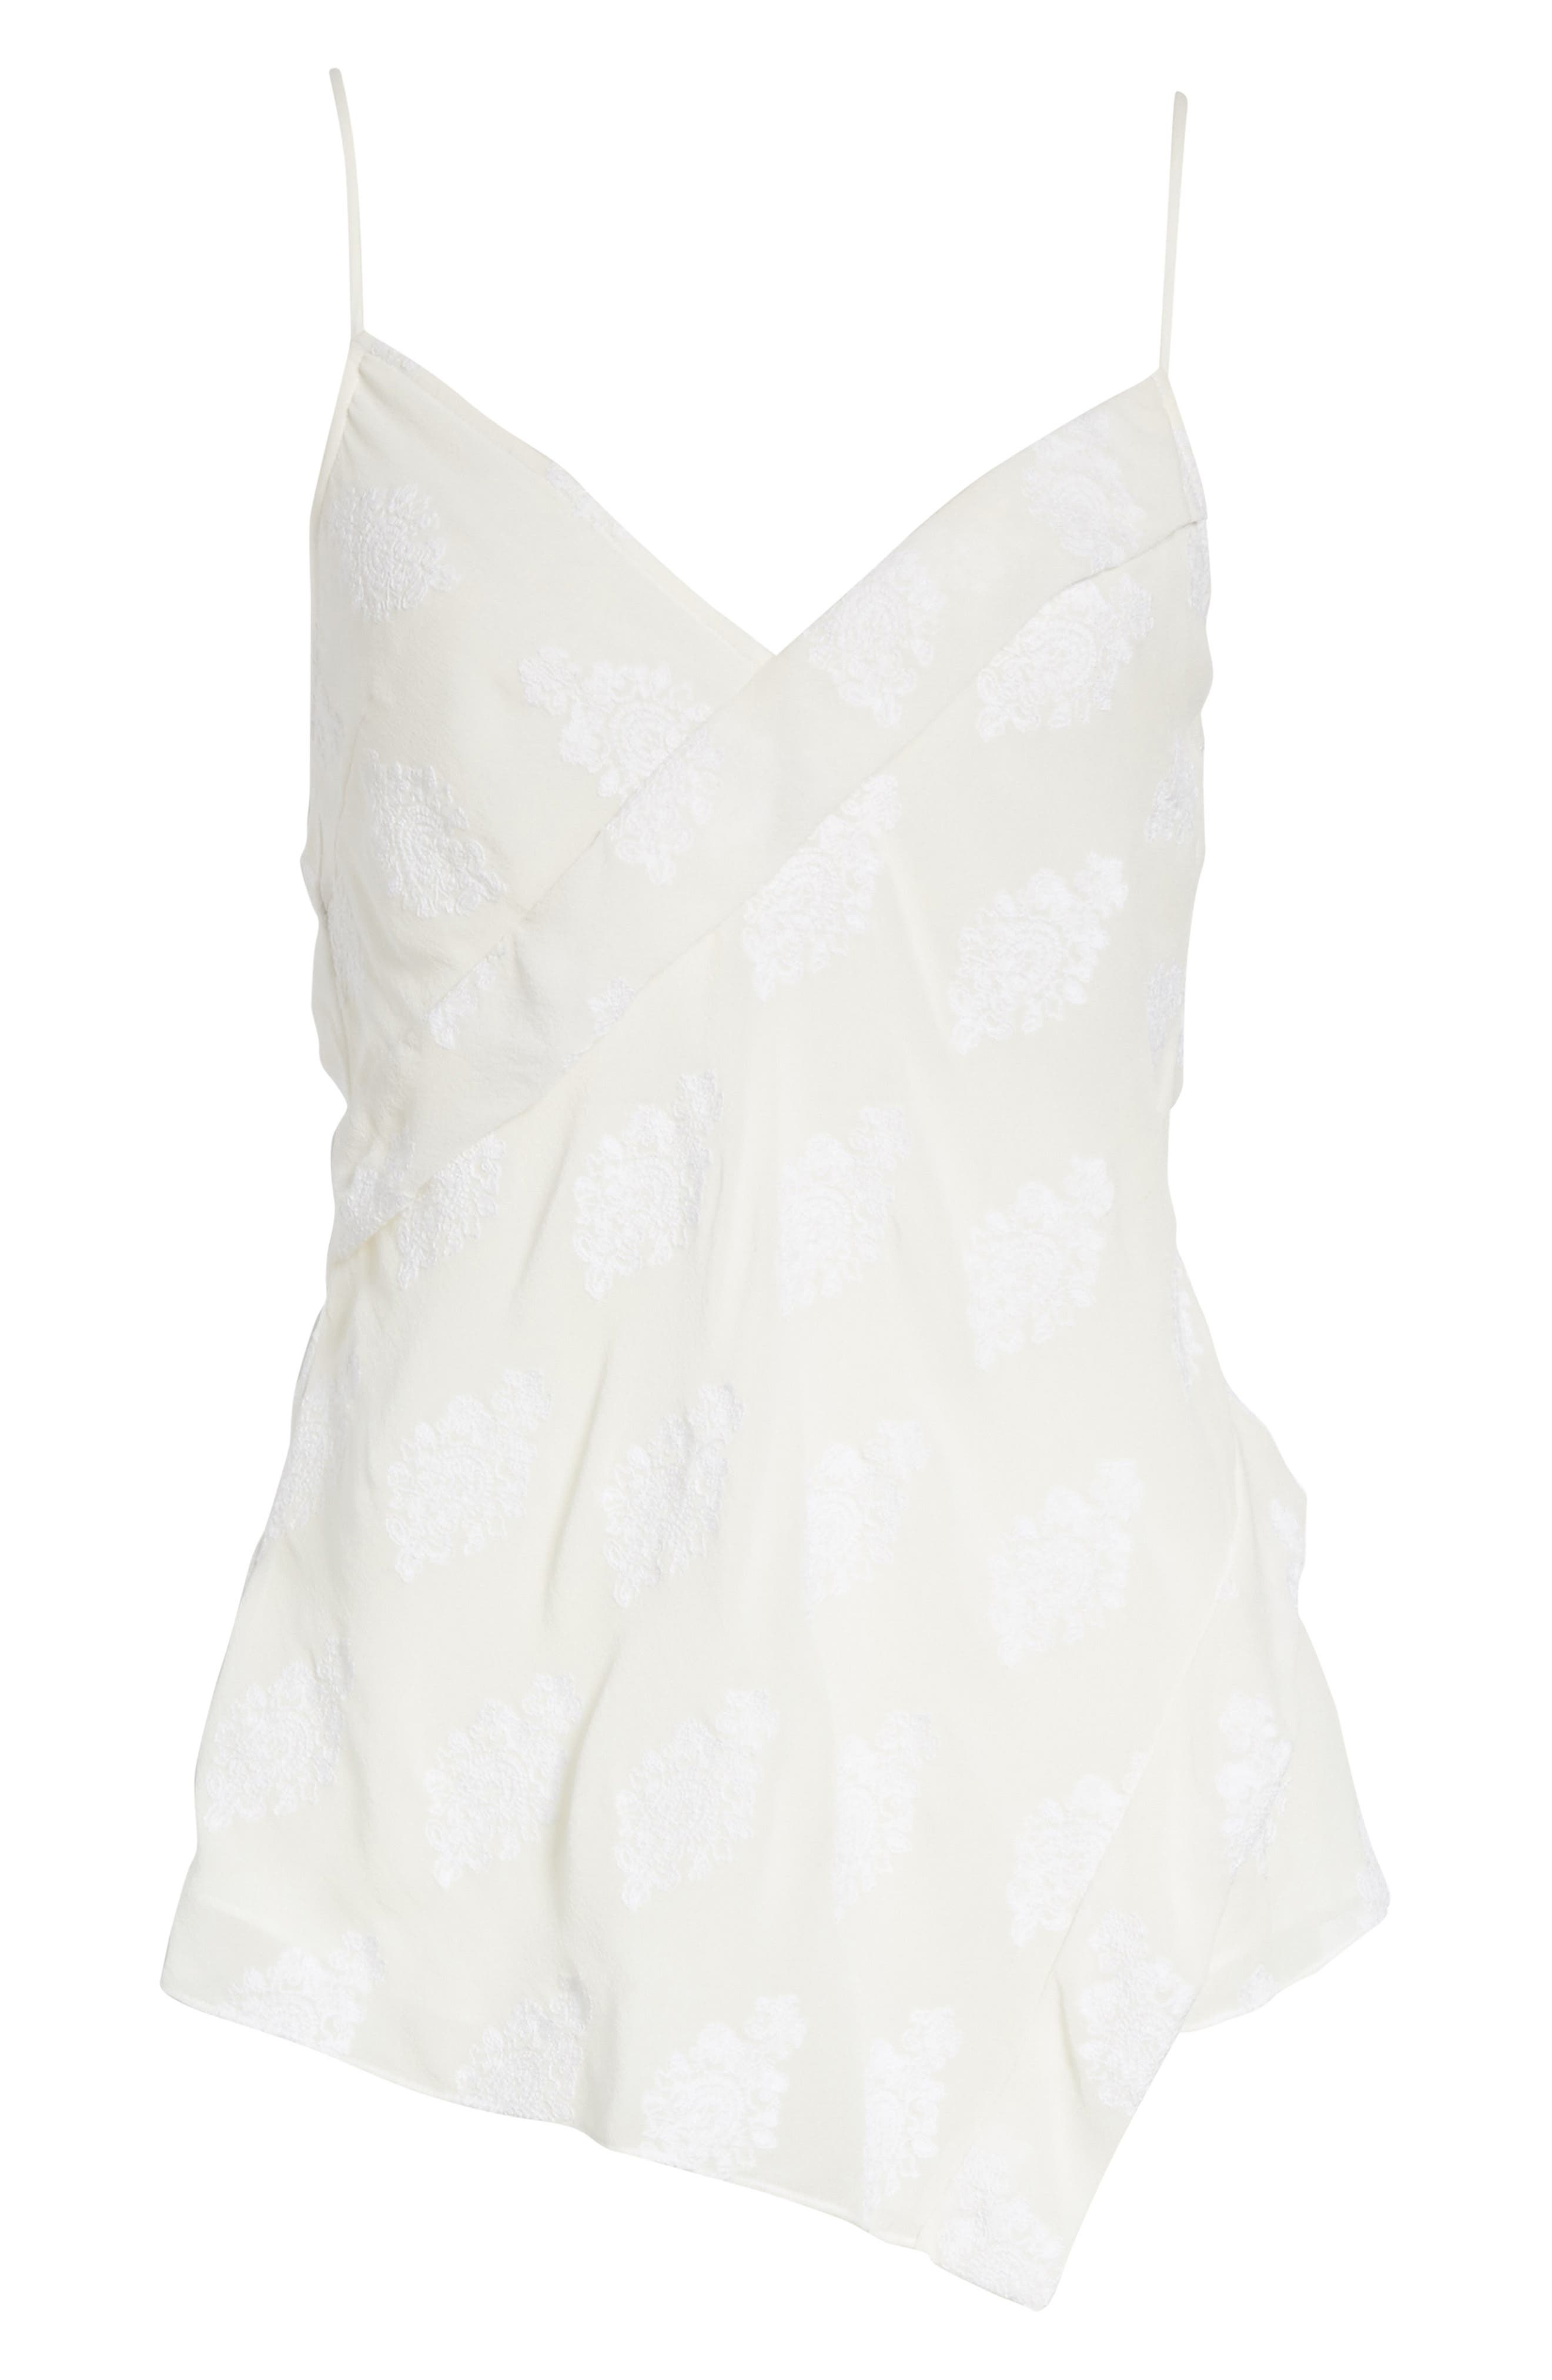 C2.Co Crossover Camisole,                             Alternate thumbnail 6, color,                             White/ White